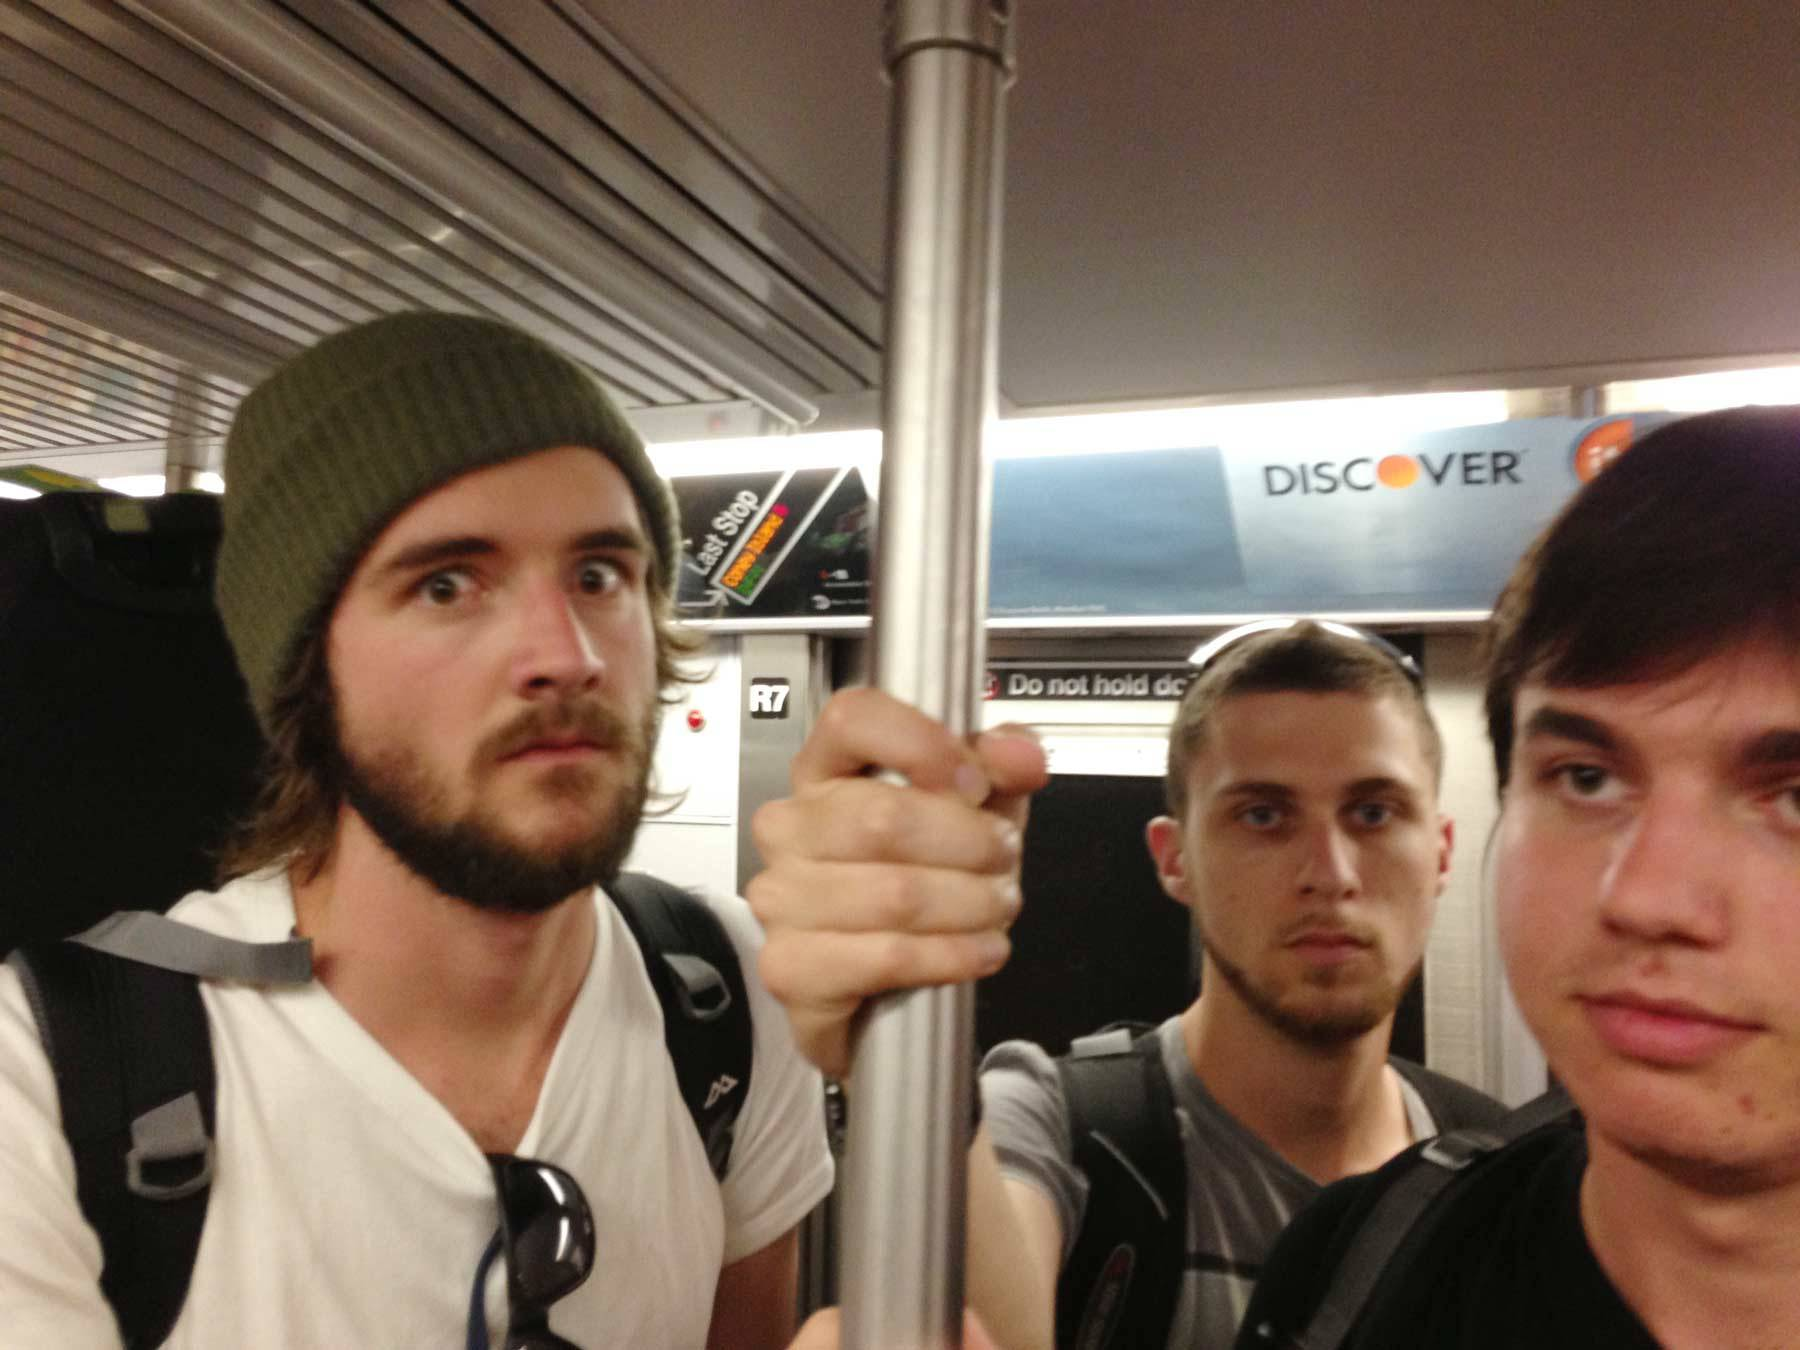 Butcher, Irwin, and Andrew on the train